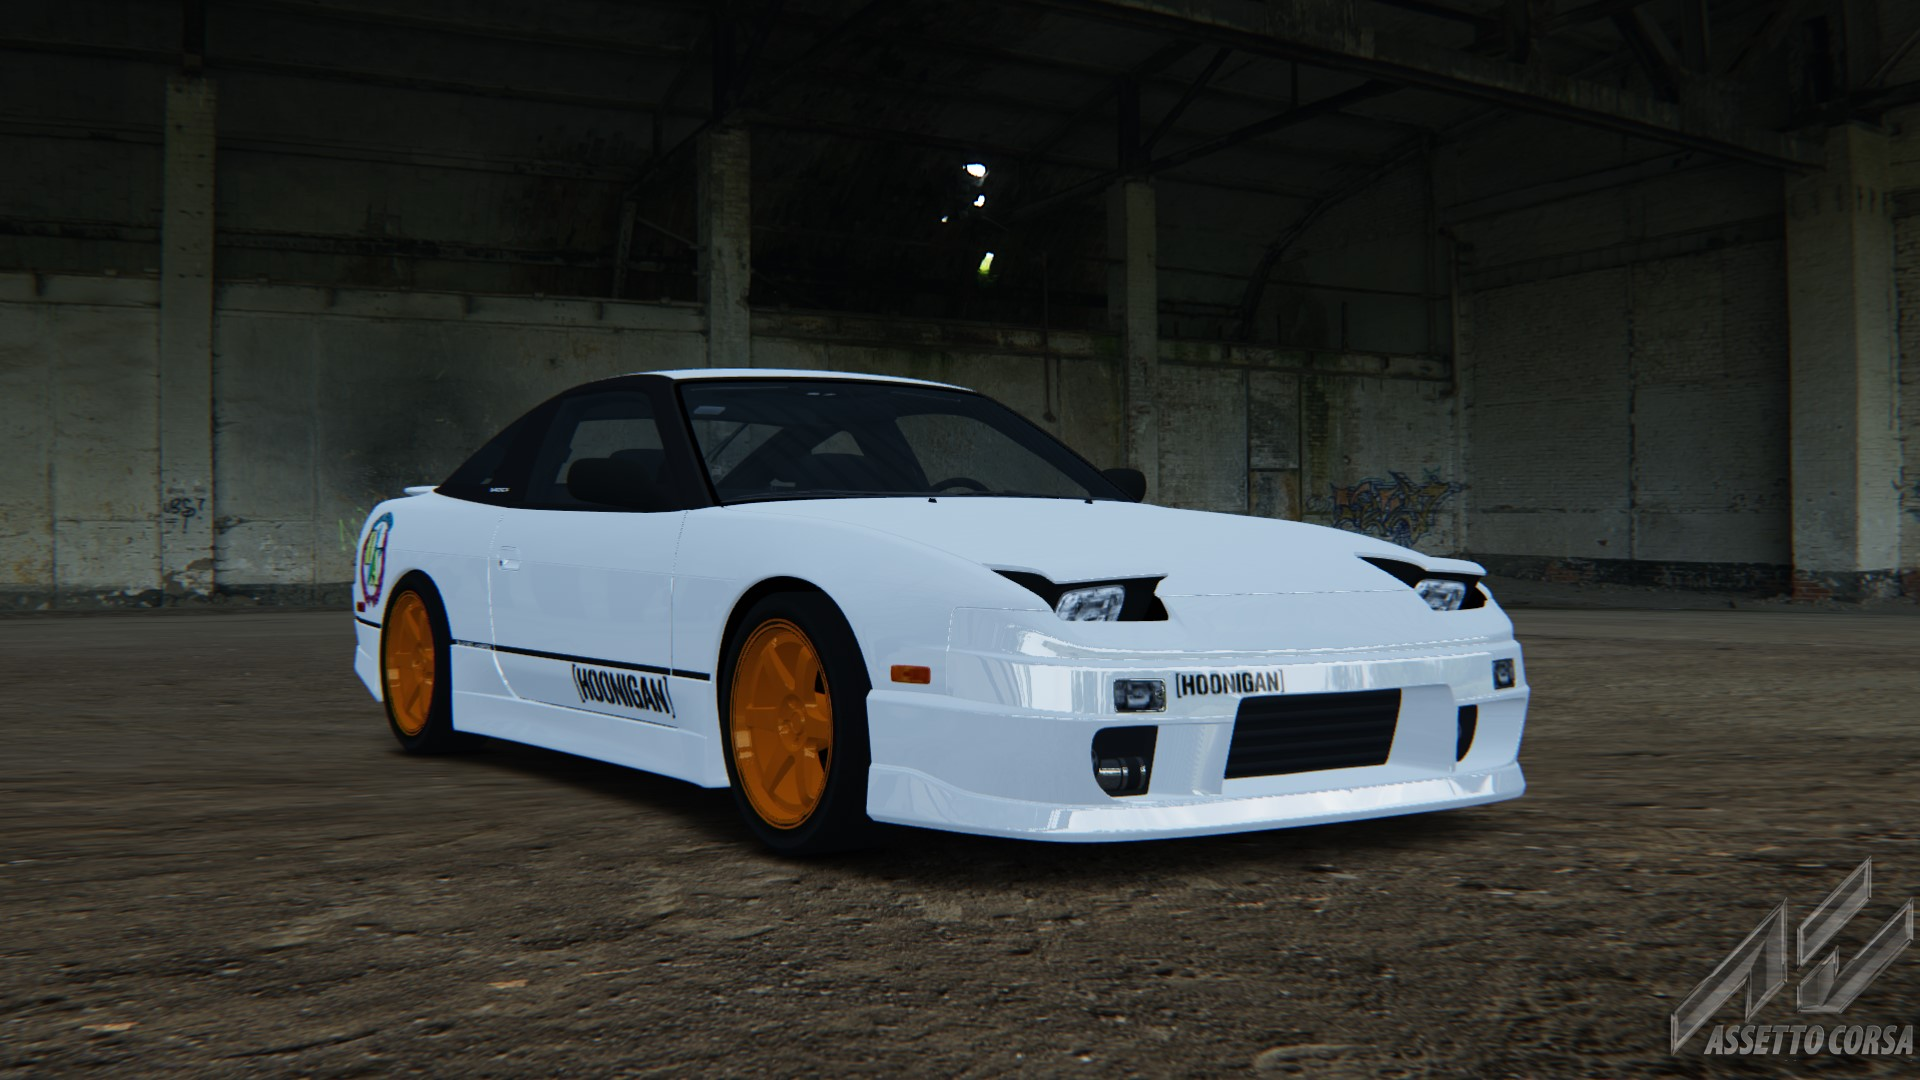 Hoonigan White